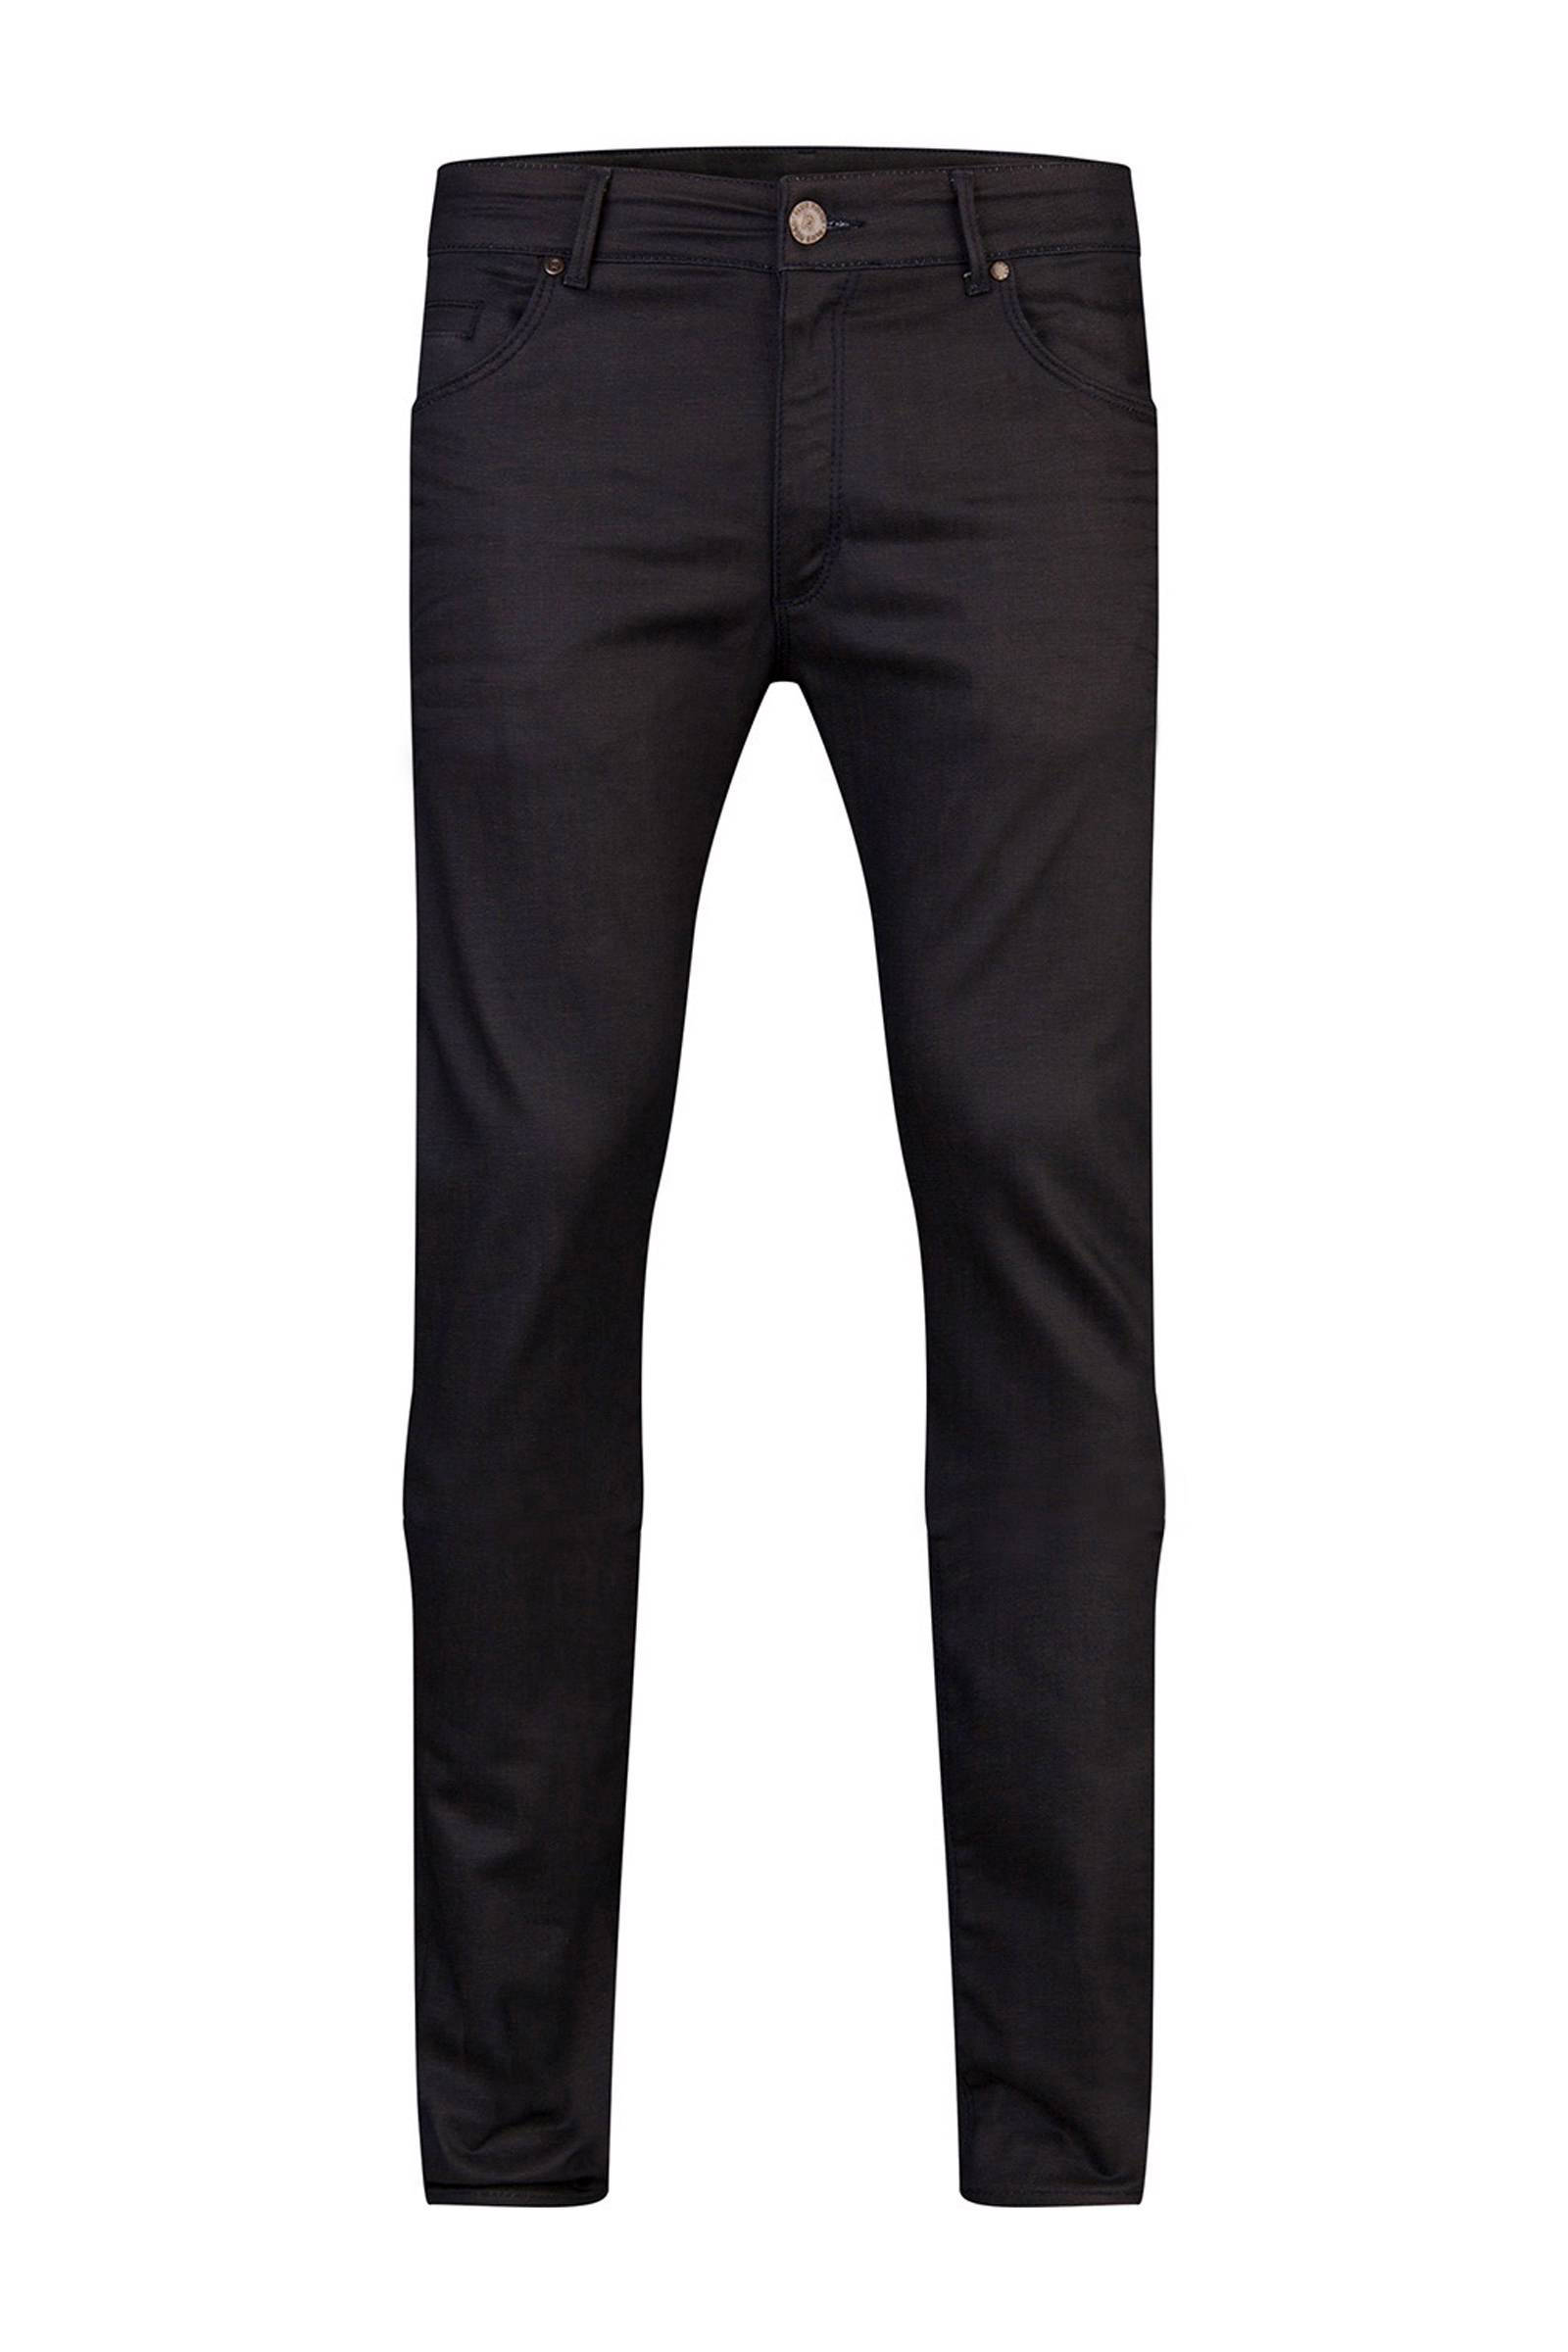 Blue Ridge skinny skinny fit super stretch jeans